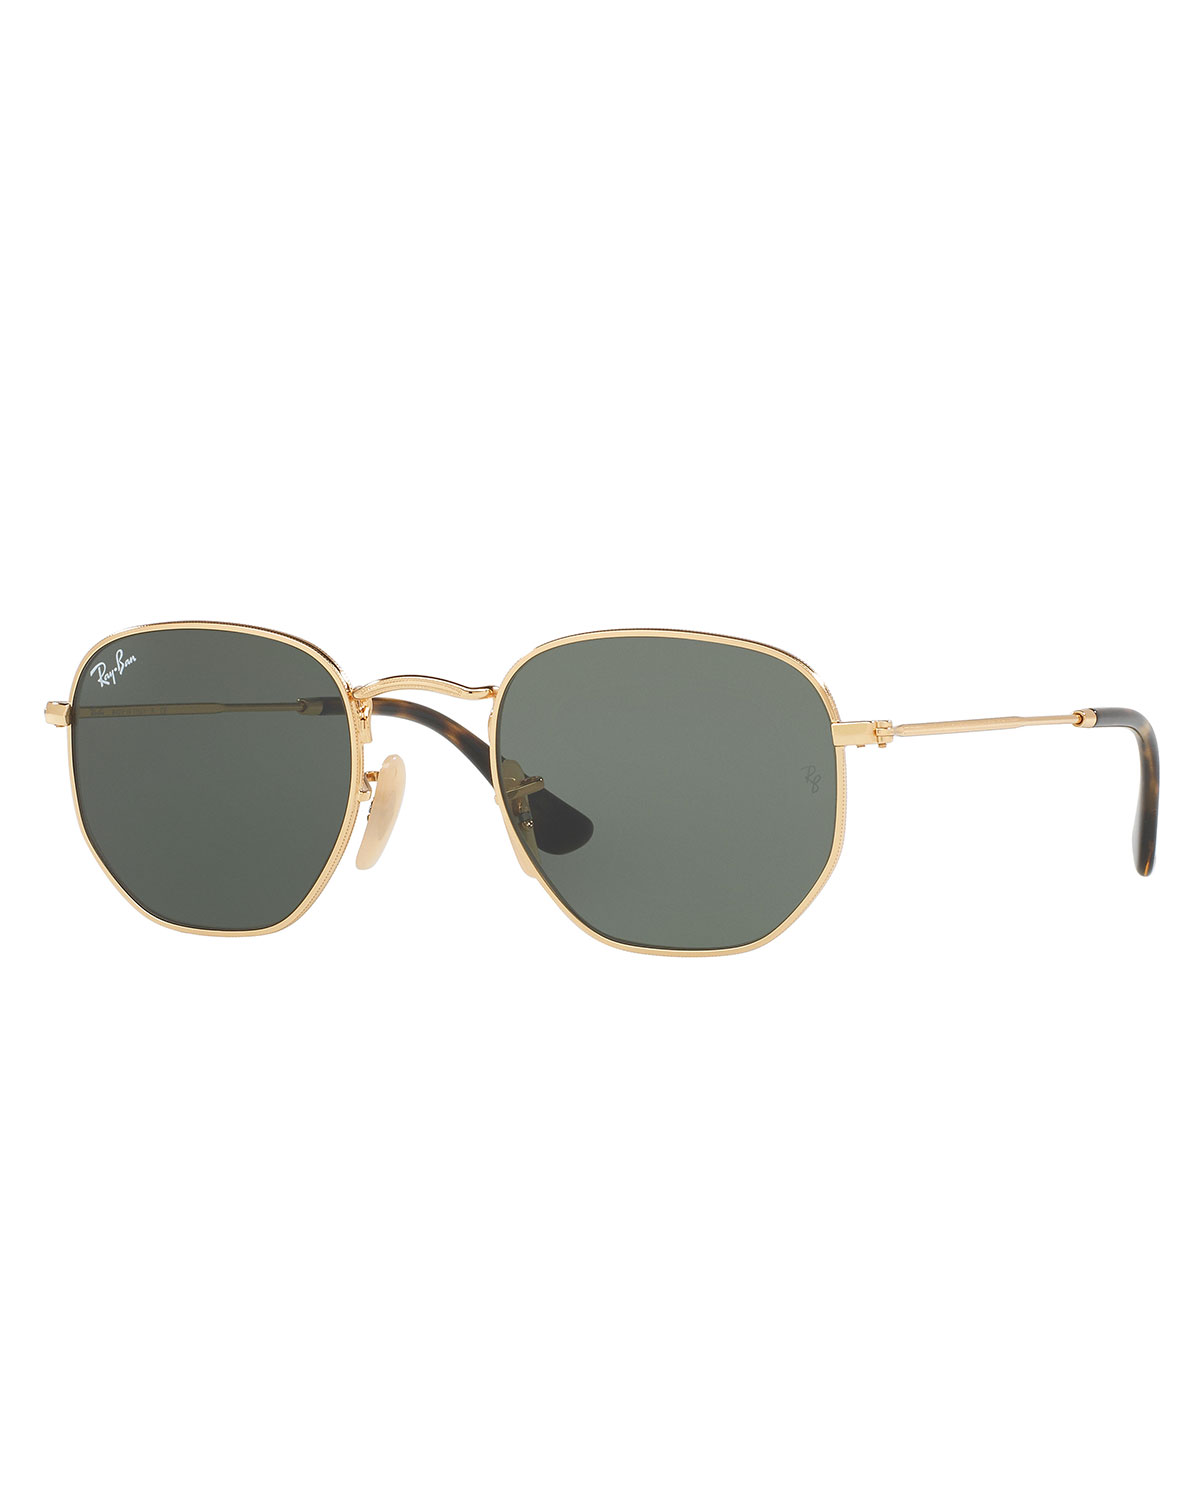 d3a2abcb530 Ray-Ban Men s Hexagonal Metal Sunglasses